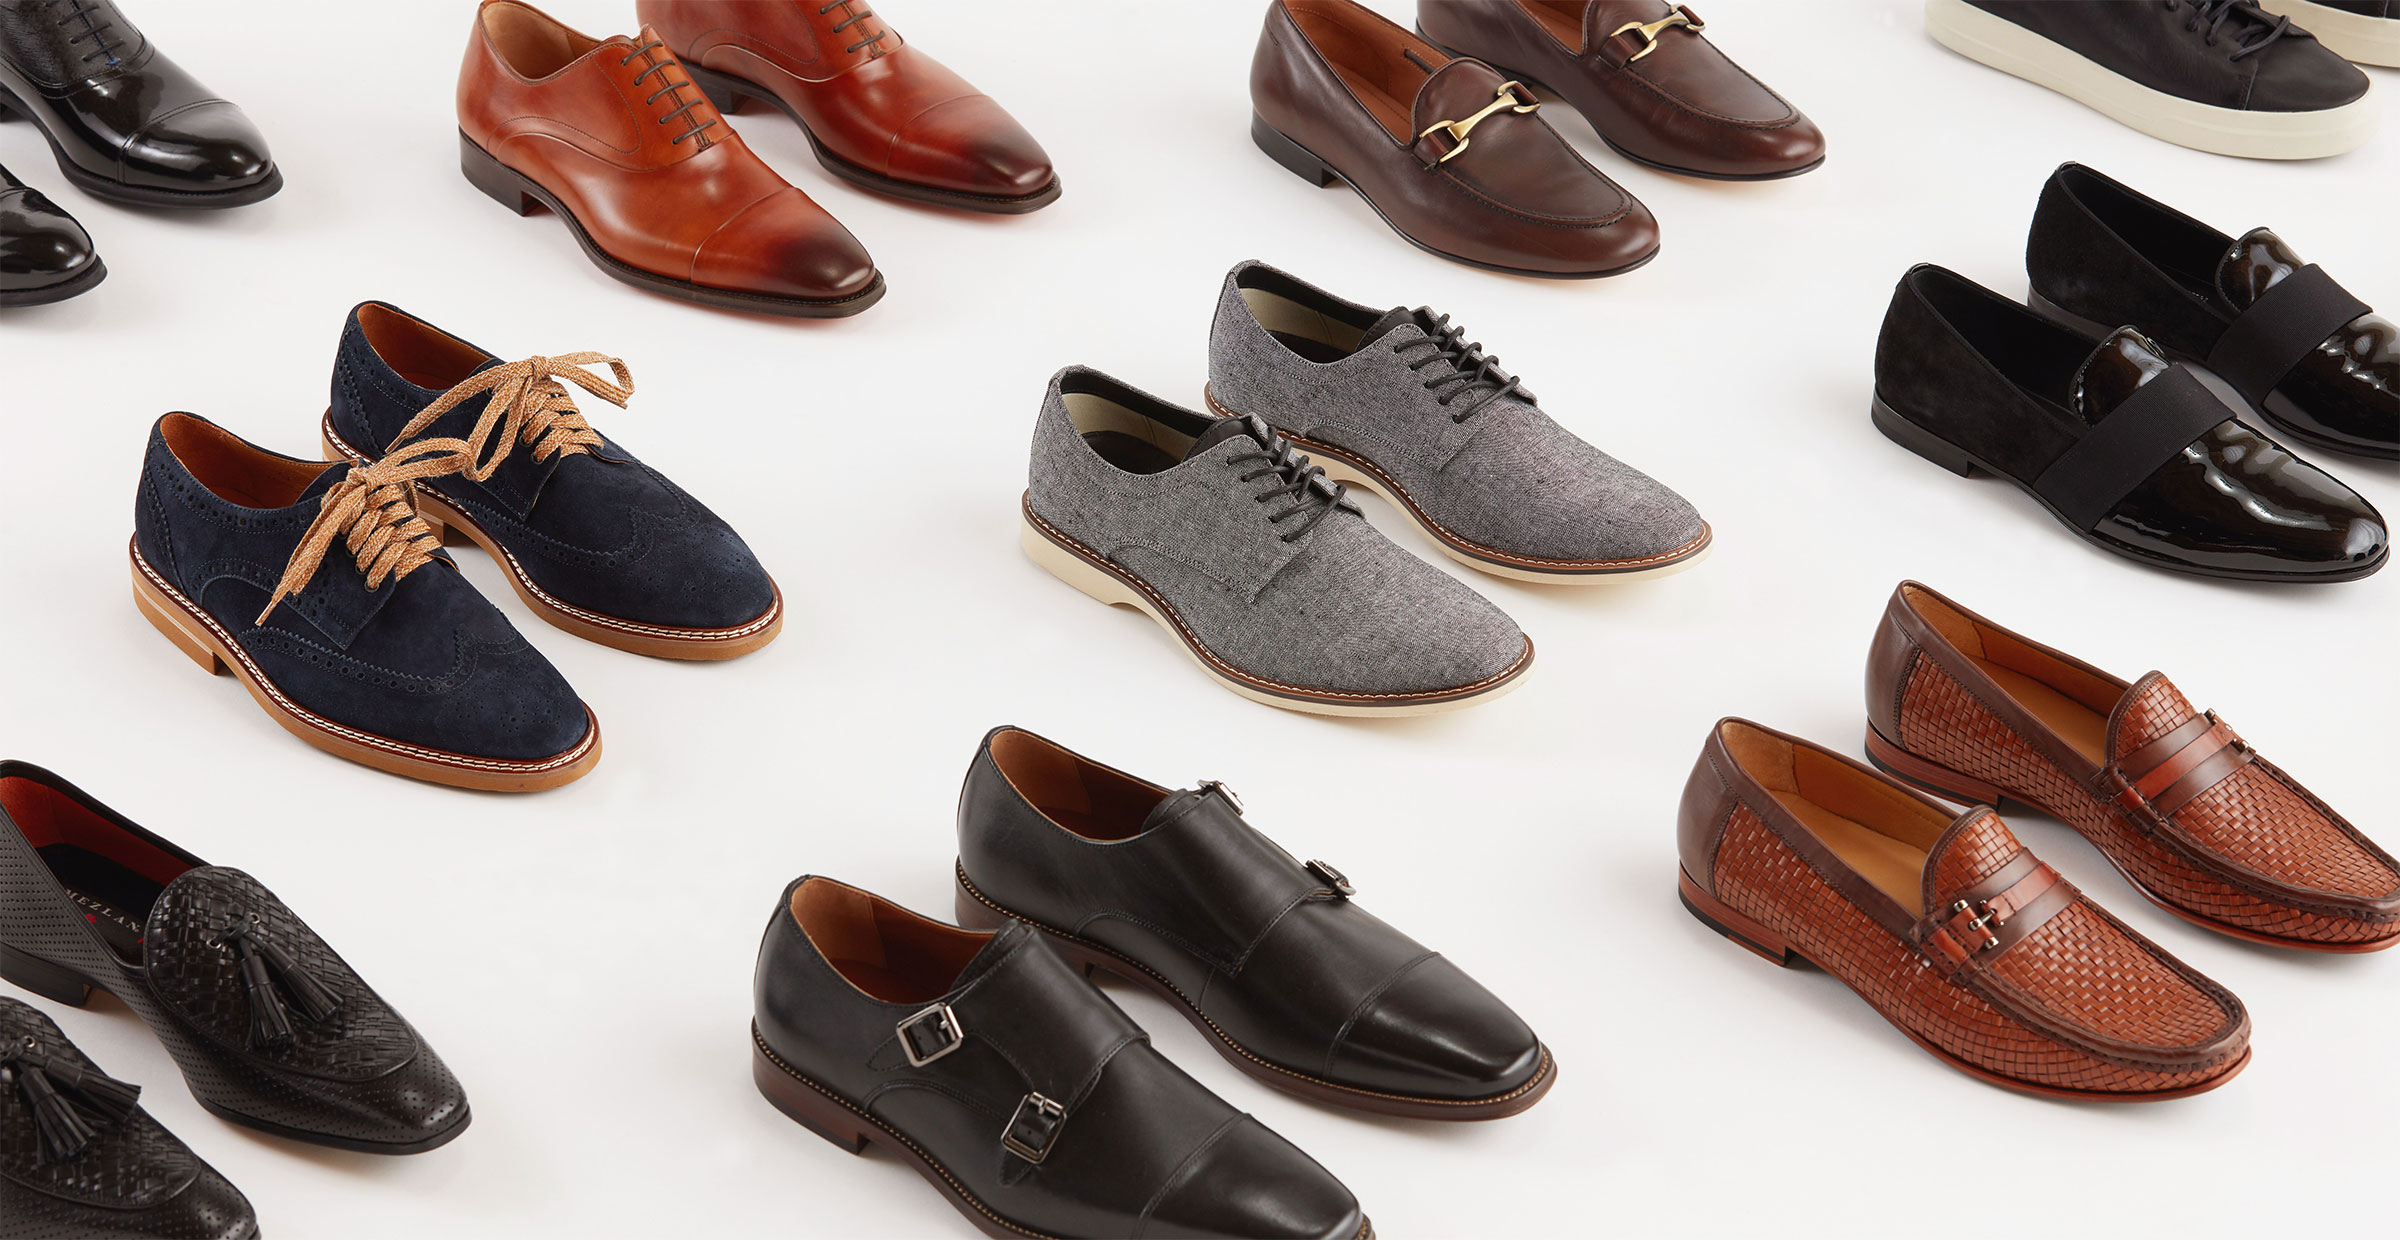 Dapper Shoes for Wedding Season